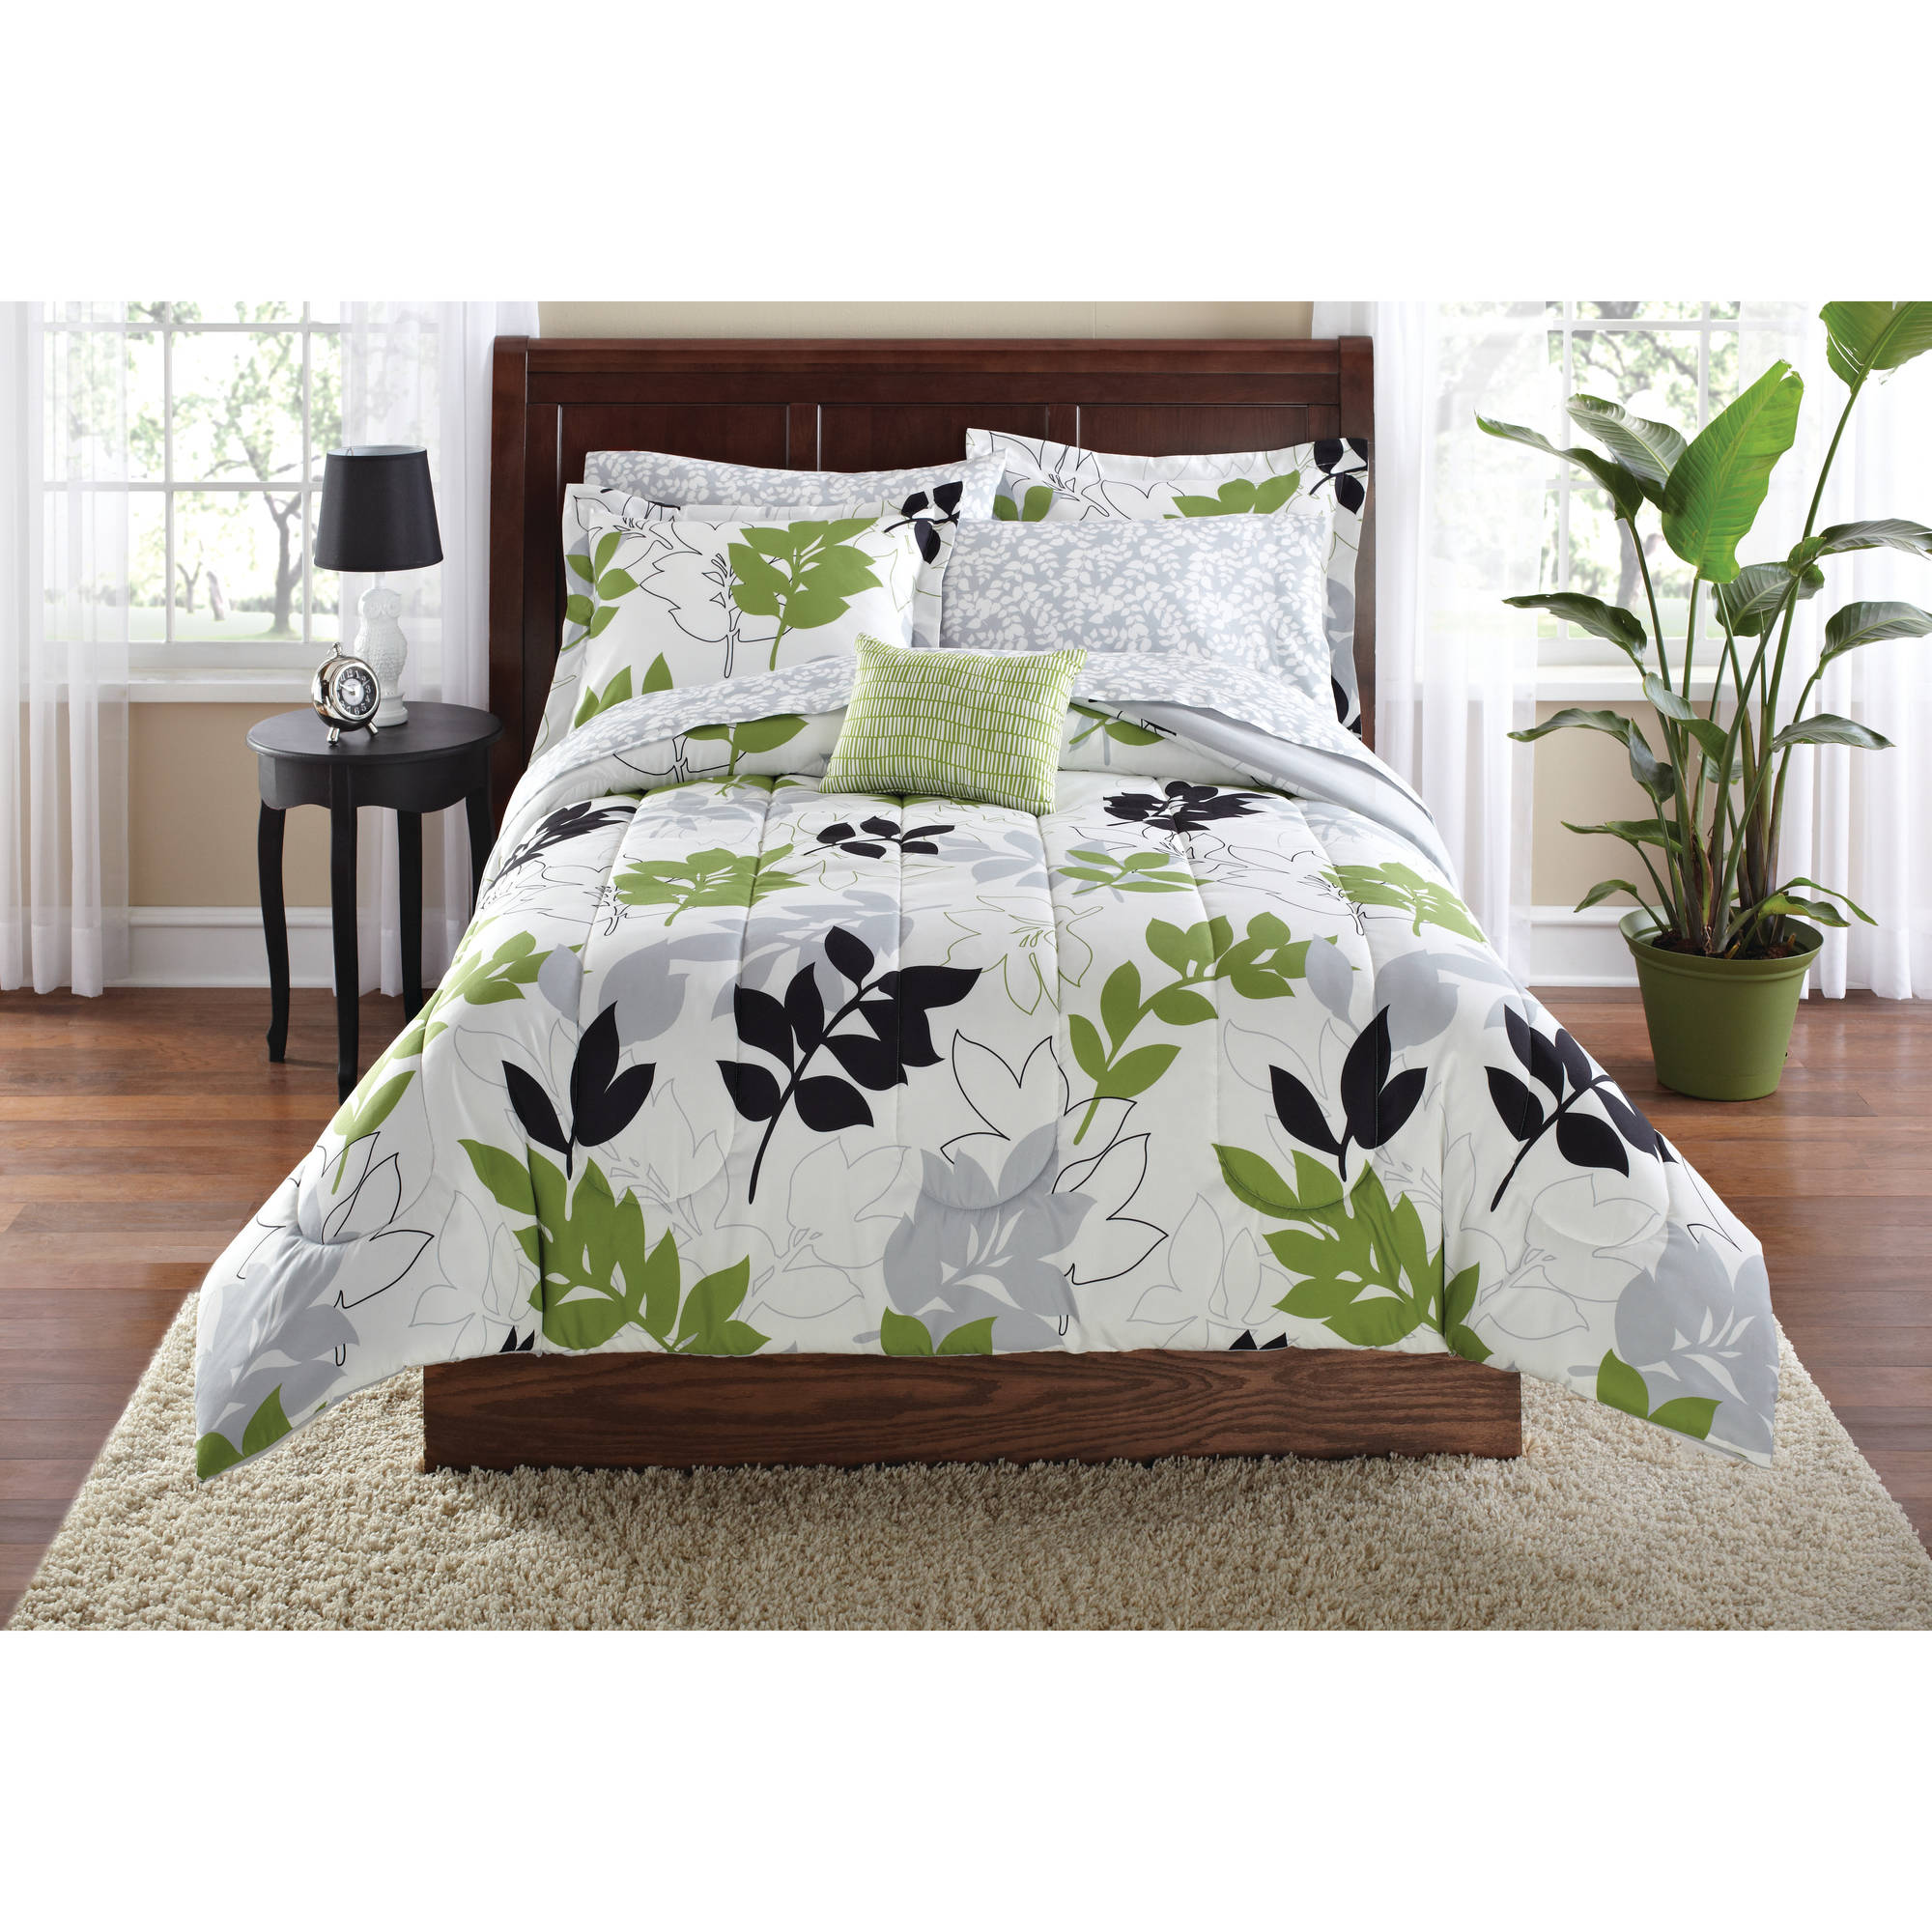 mainstays botanical leaf bed in a bag coordinated bedding set  - mainstays botanical leaf bed in a bag coordinated bedding set  walmartcom